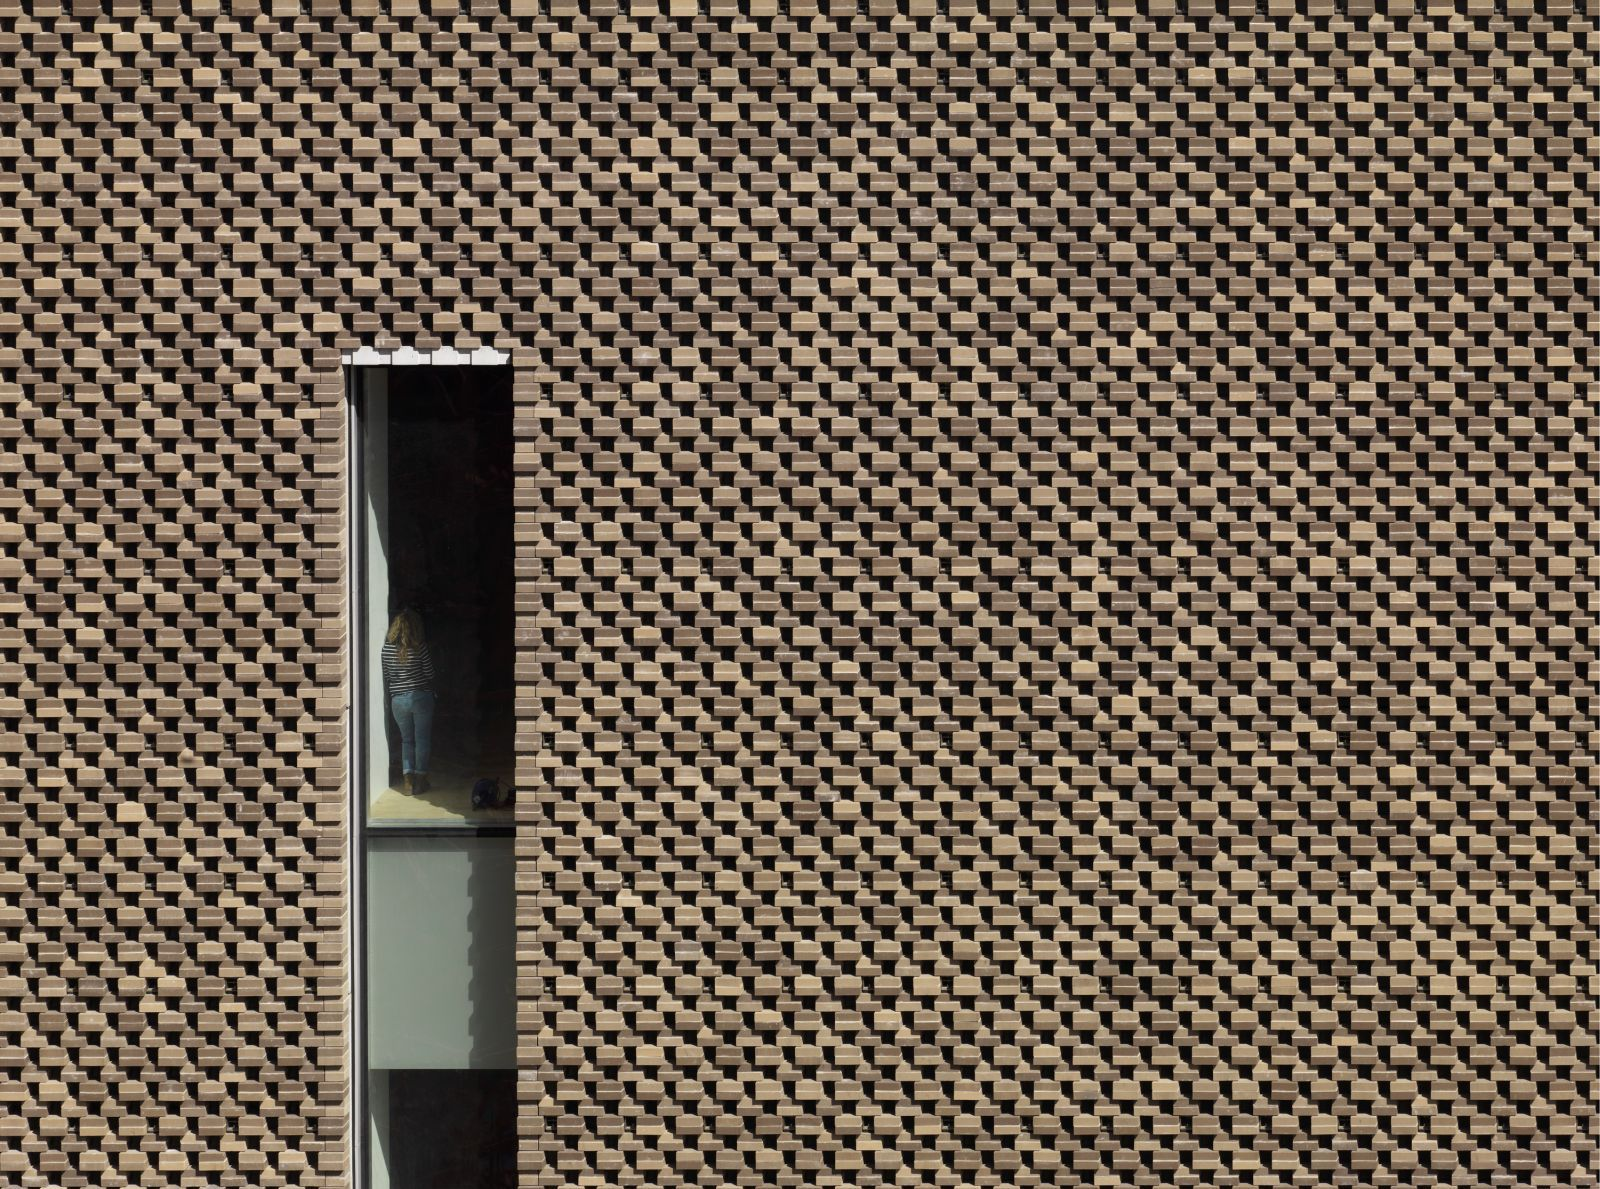 Tate modern switch house by marcus leith tate photography for Switch house tate modern architecture